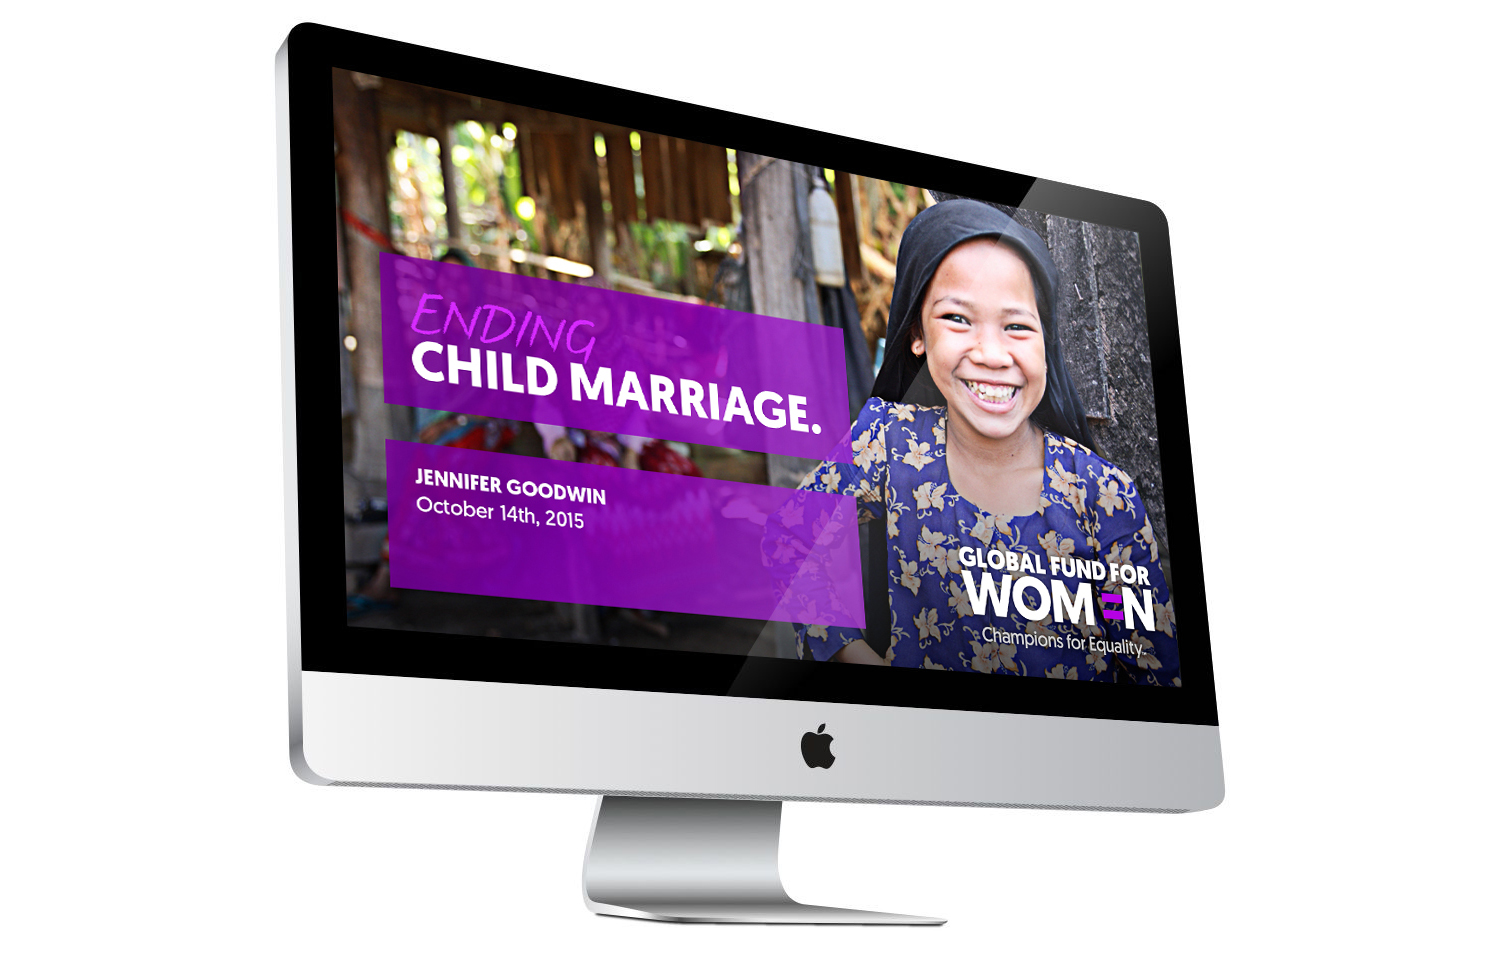 Global Fund for Women website branding and design by Good Stuff Partners